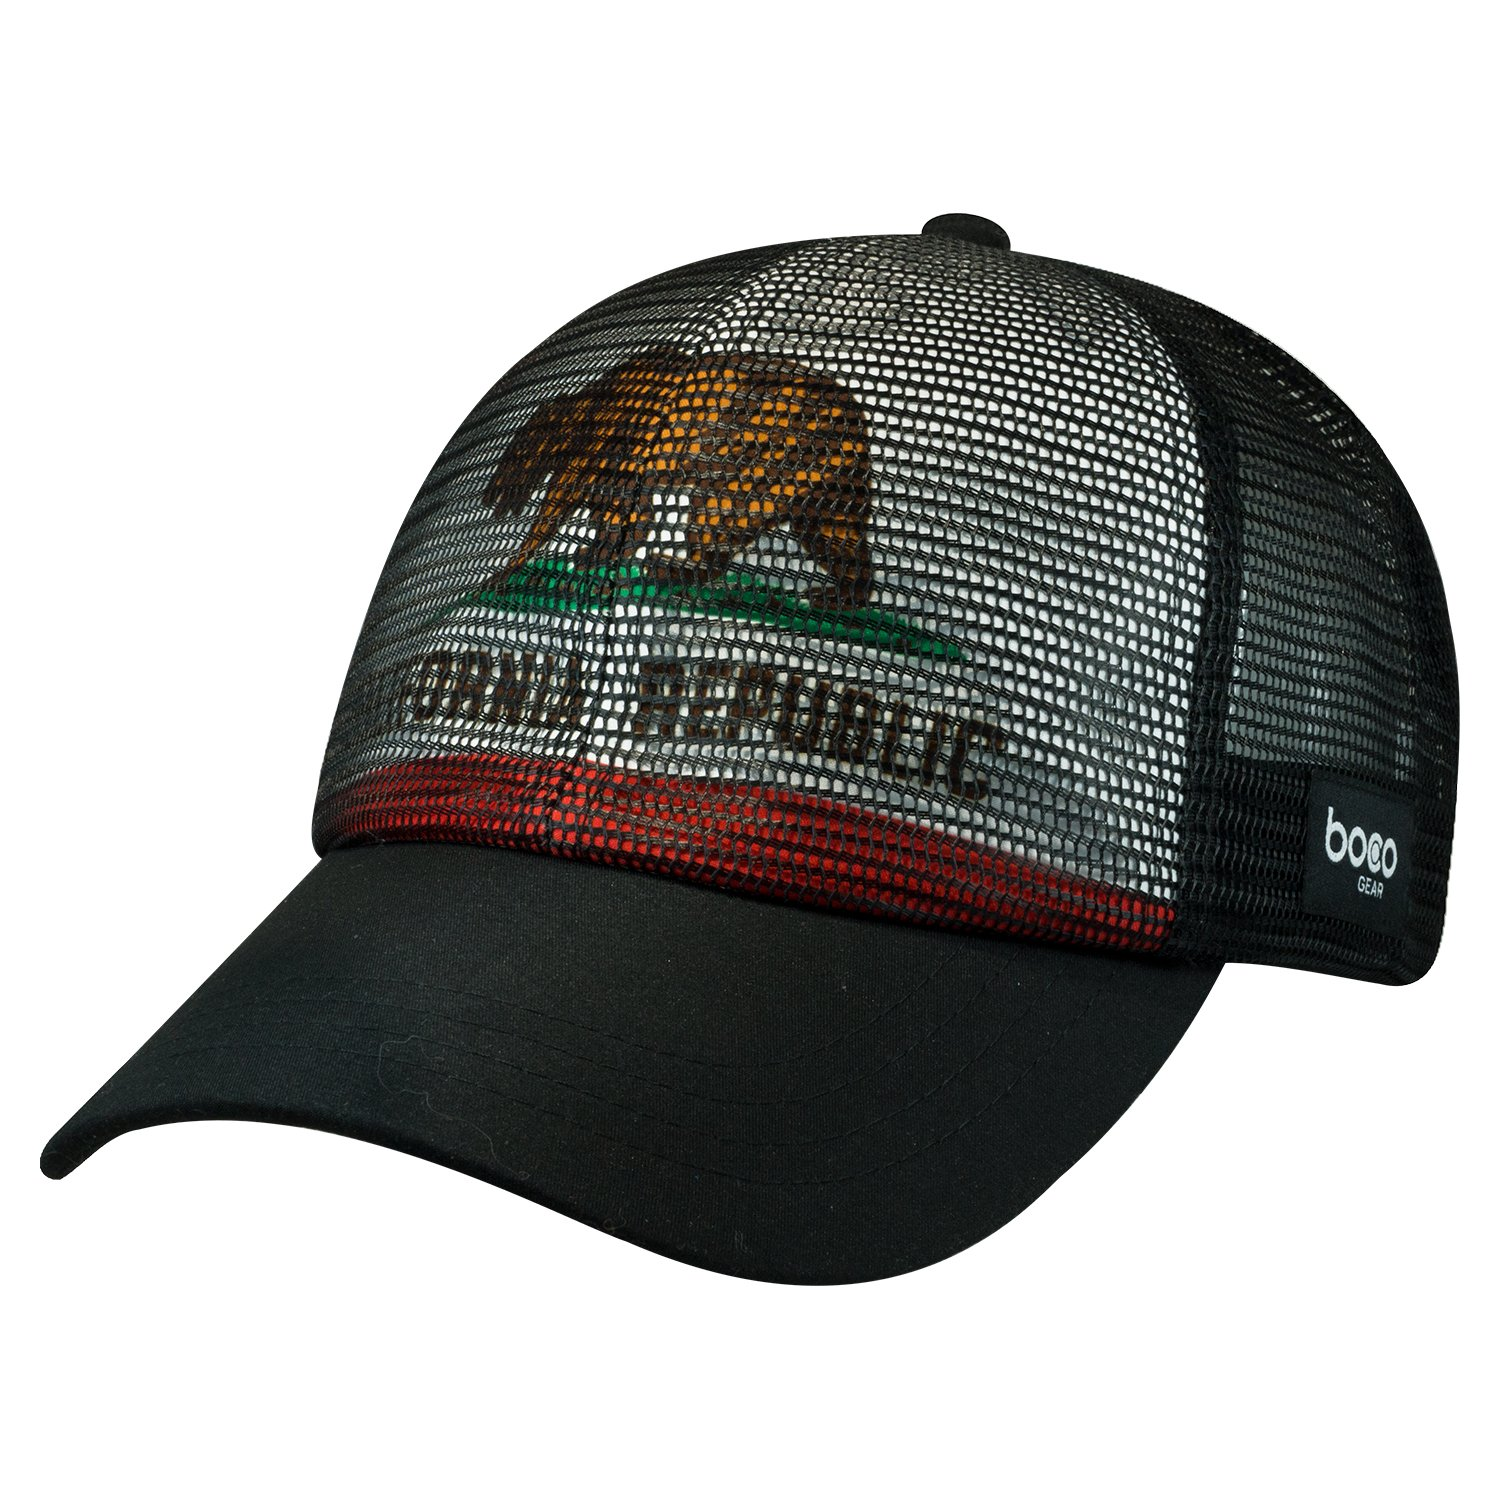 7ab0e0d8f12 Get Quotations · BOCO Gear All Mesh Technical Trucker Hat - California -  Black - Flag underlay